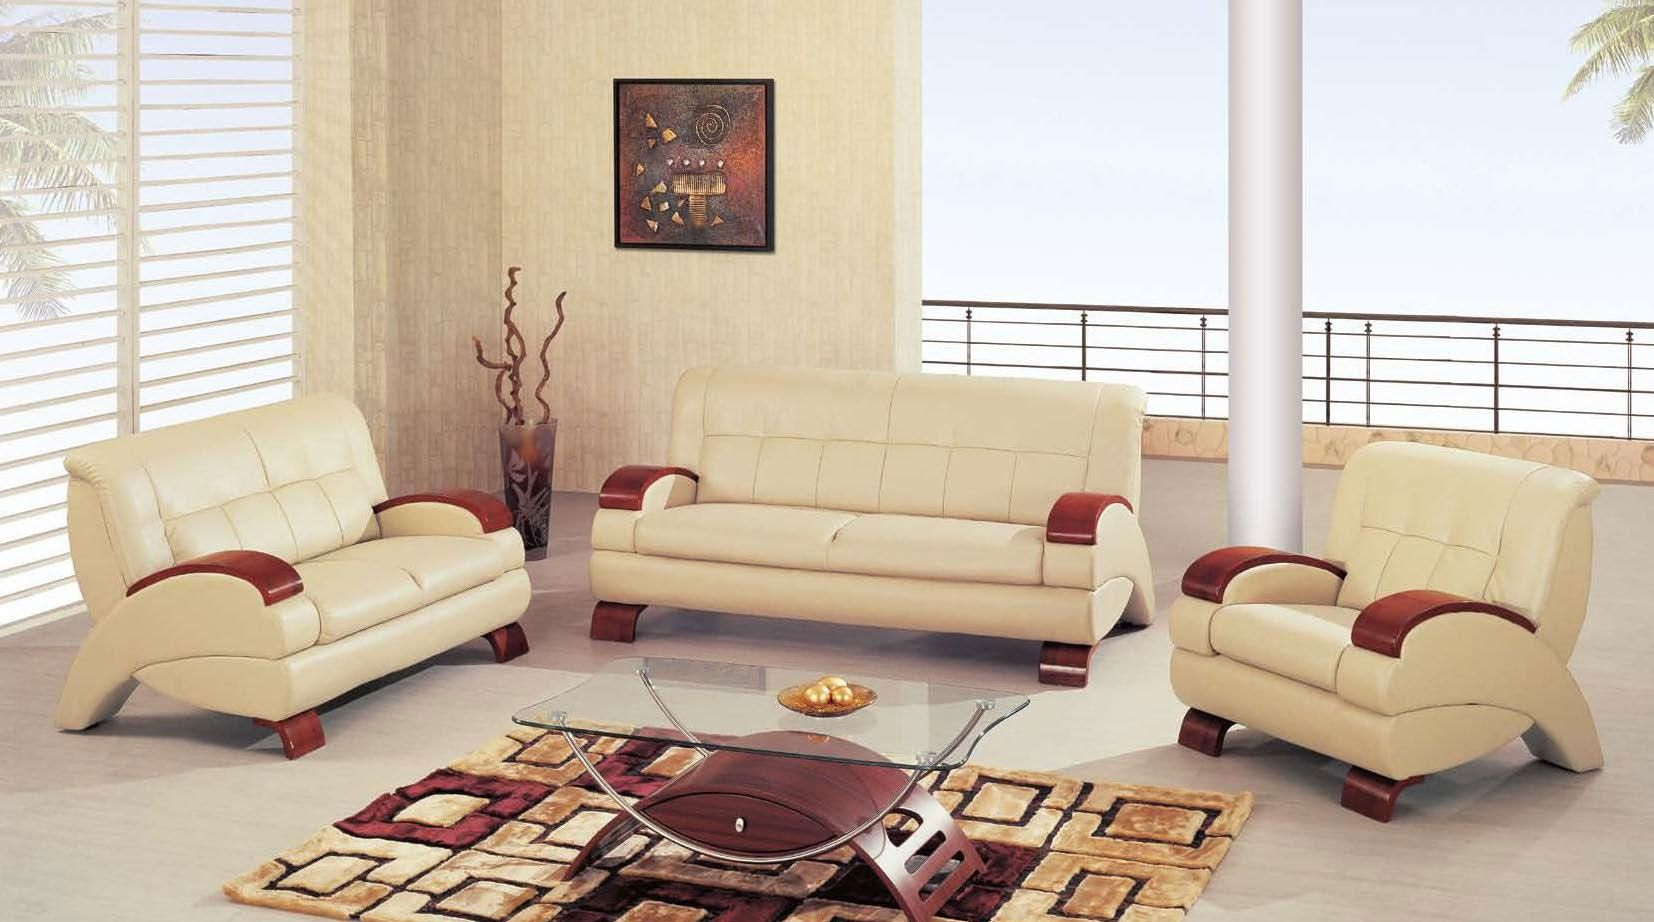 Couch Leder Cappuccino 1378 2 Pcs Modern Cappuccino Leather Sofa Set Sofa And Loveseat